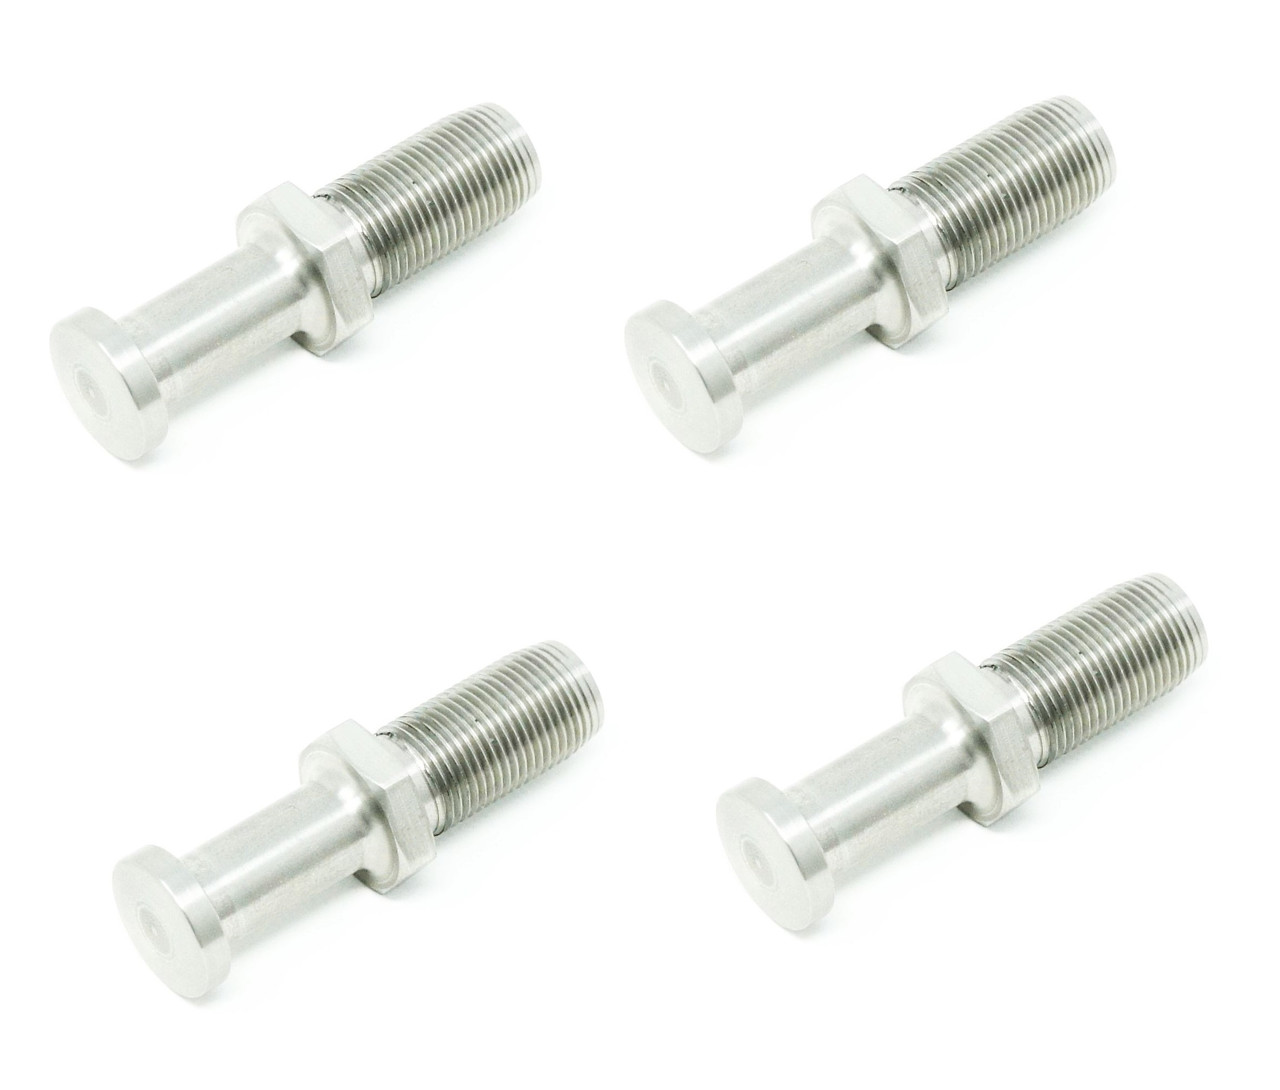 36. DOOR STRIKER PIN KIT STAINLESS